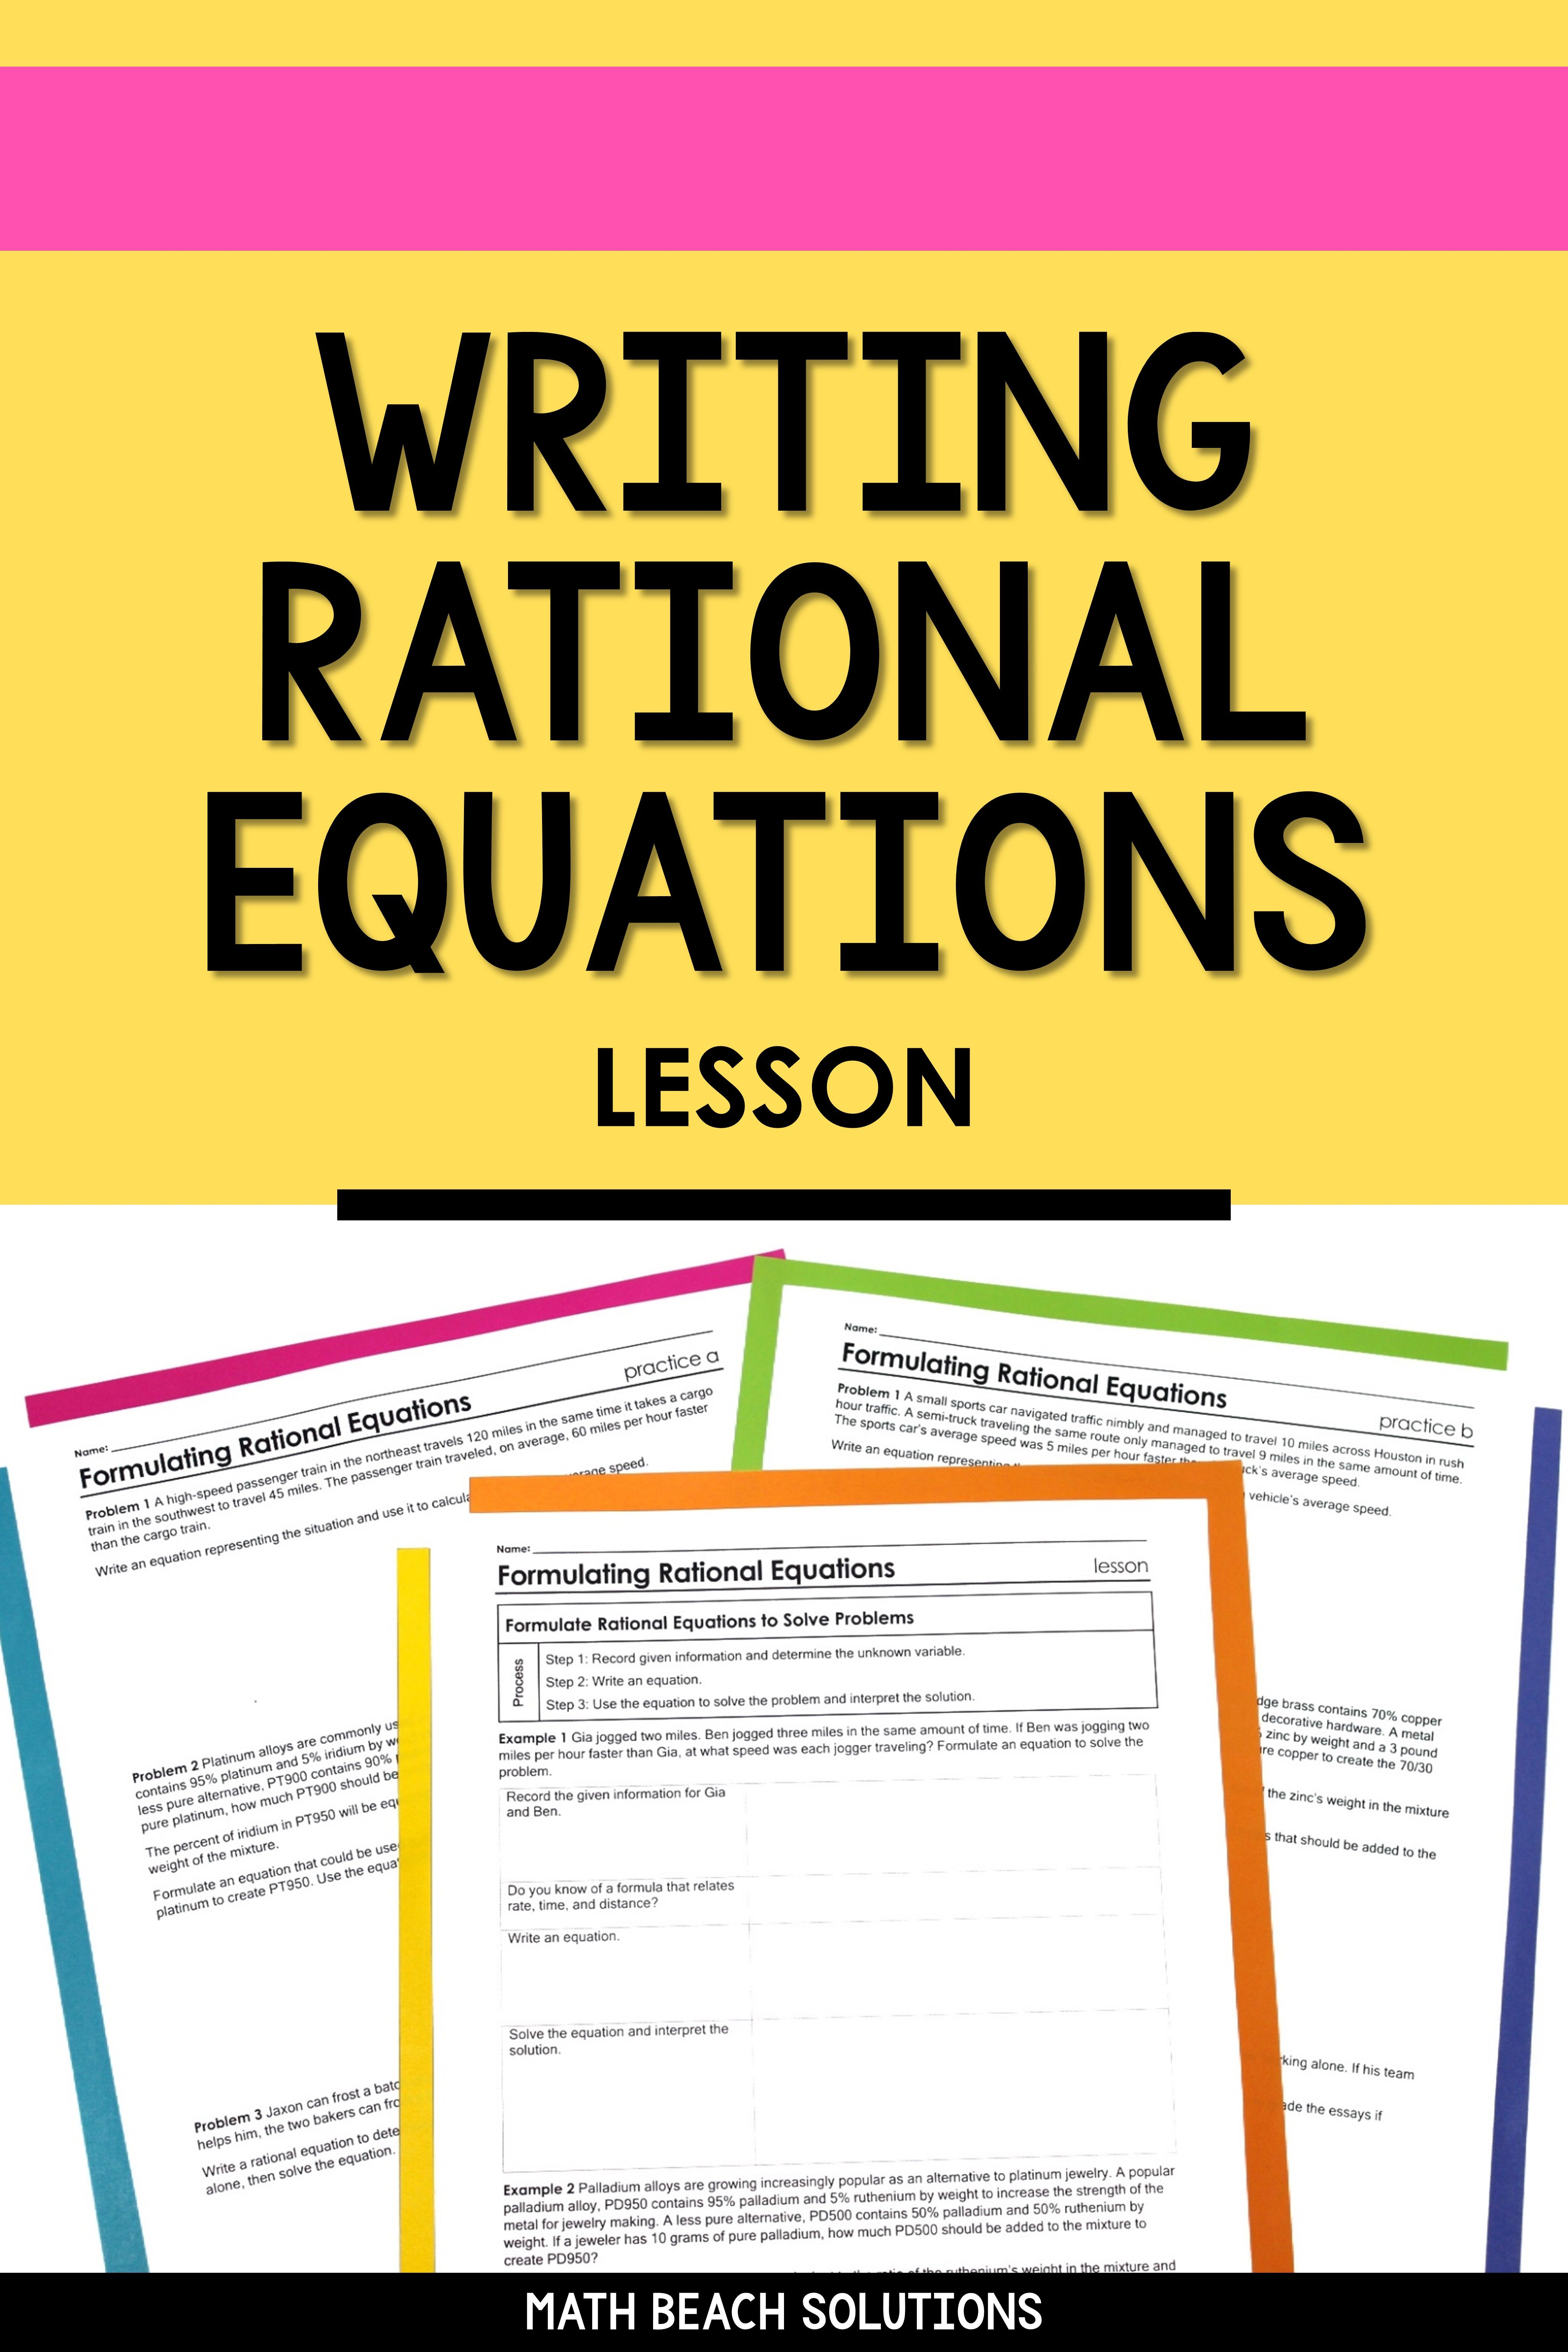 Formulating Rational Equations Lesson